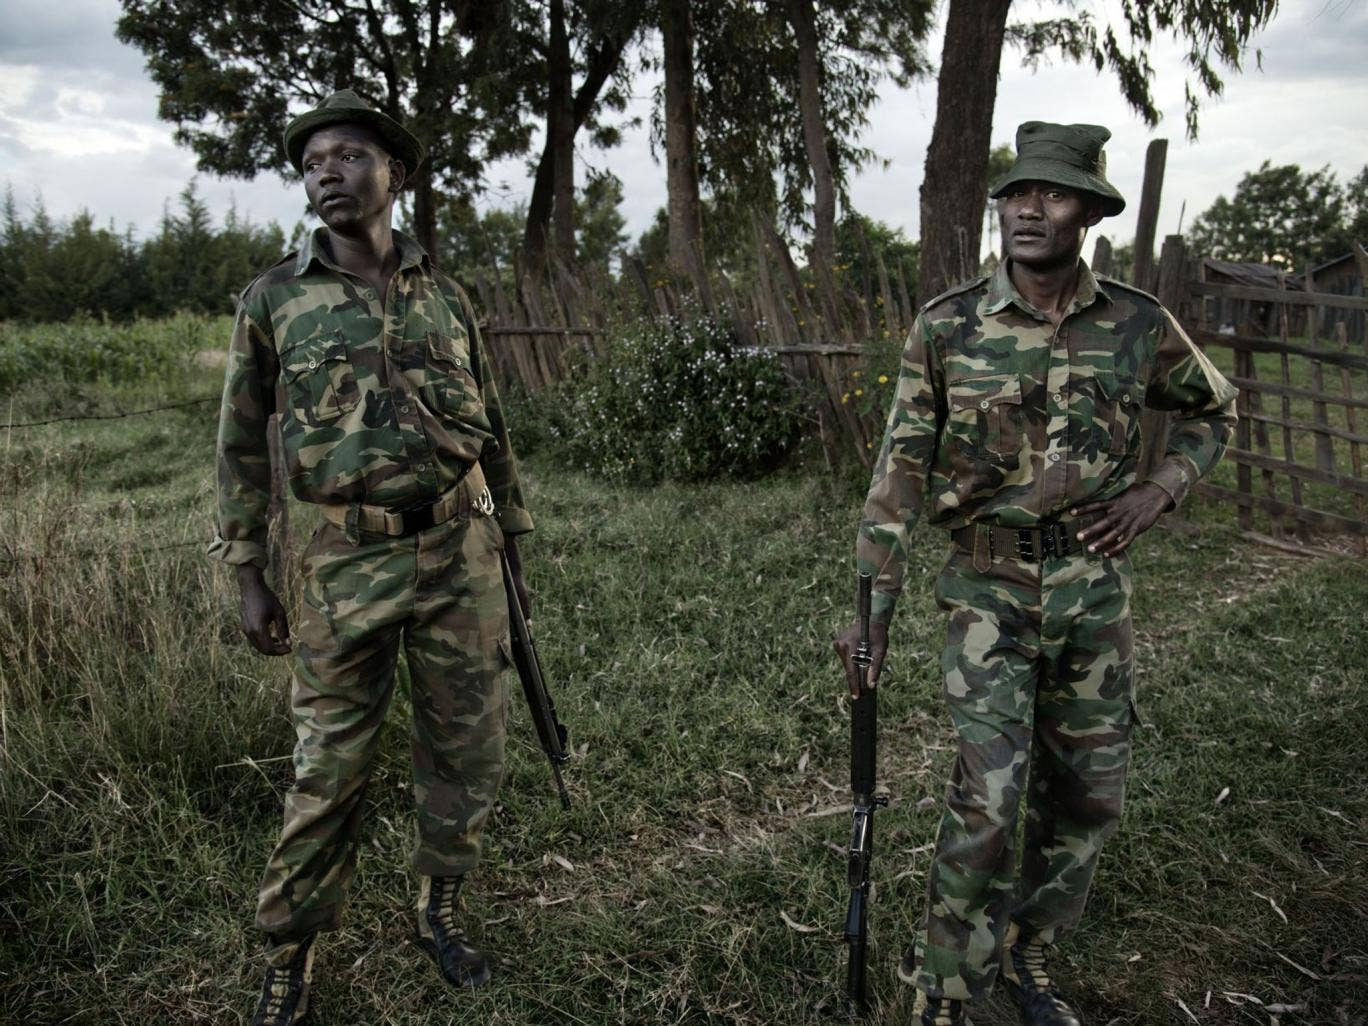 Kenya Wildlife Service rangers live on the edge of Ramuruti forest in Laikipia, Kenya where they patrol as a way to deter poachers